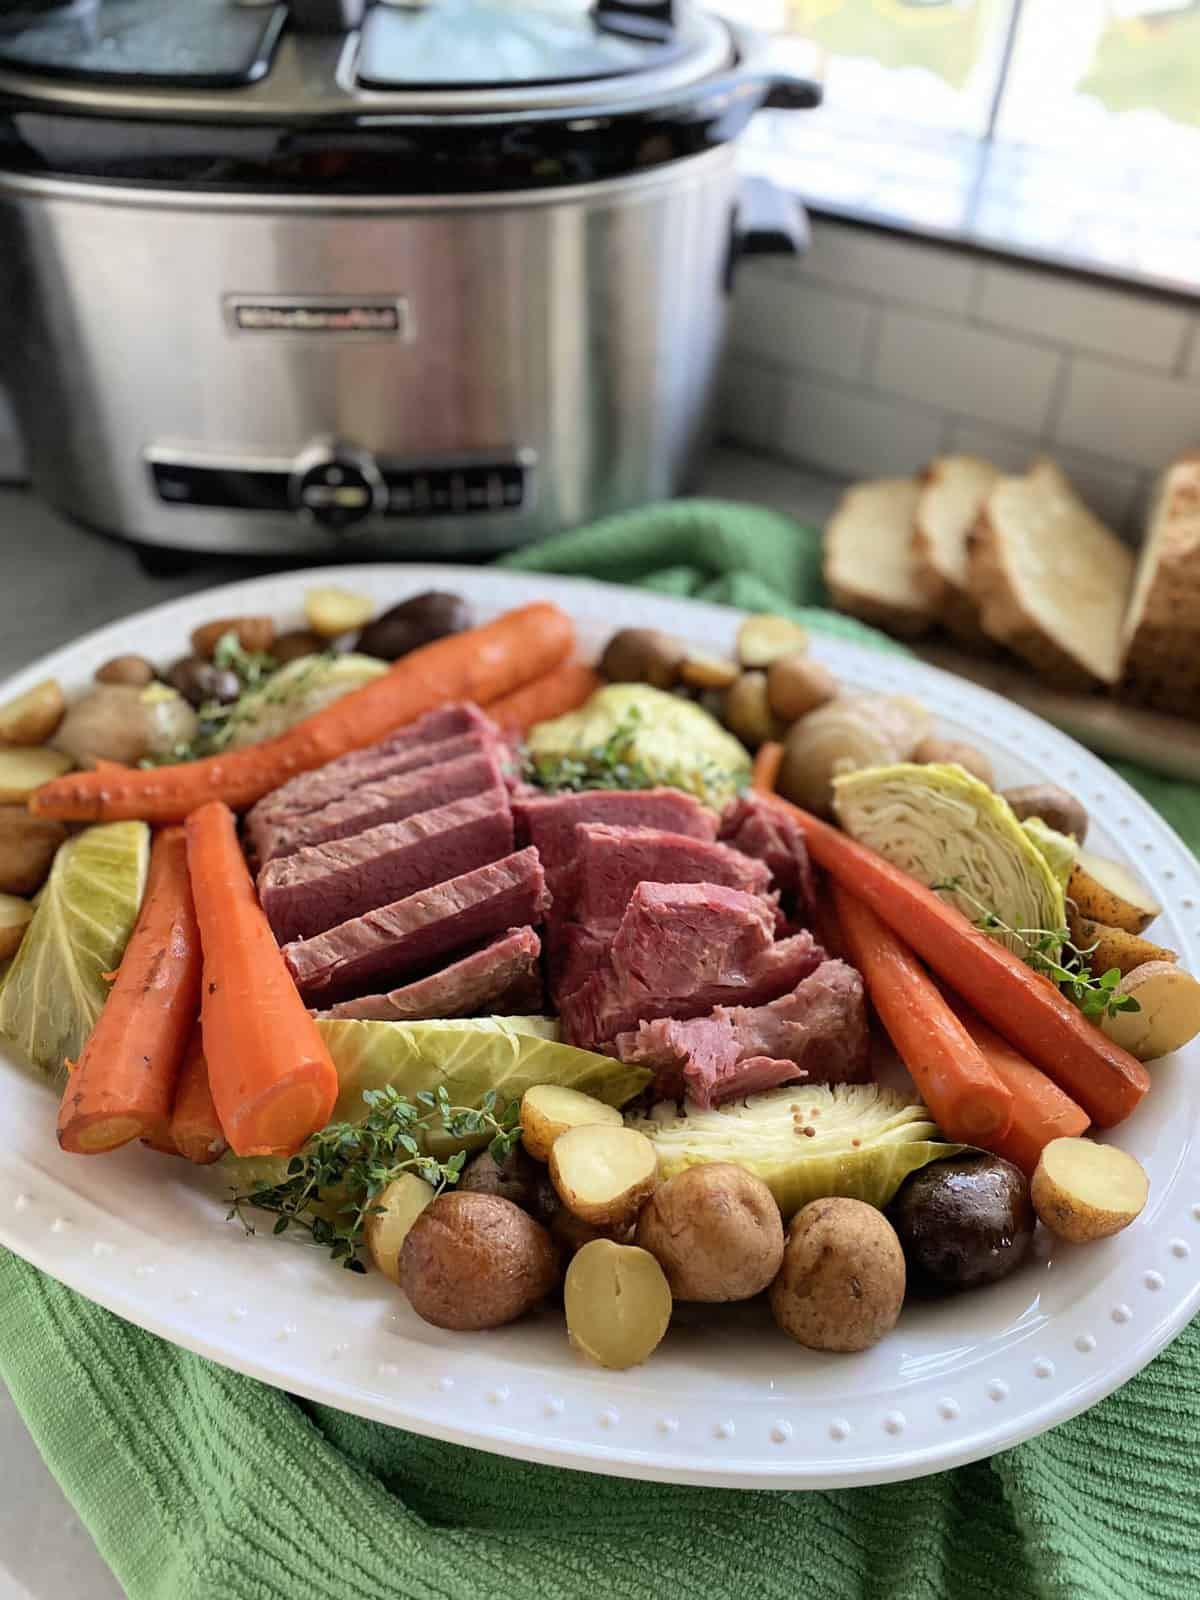 White platter filled with cabbage, corned beef, carrots, and slow cooker in the background.